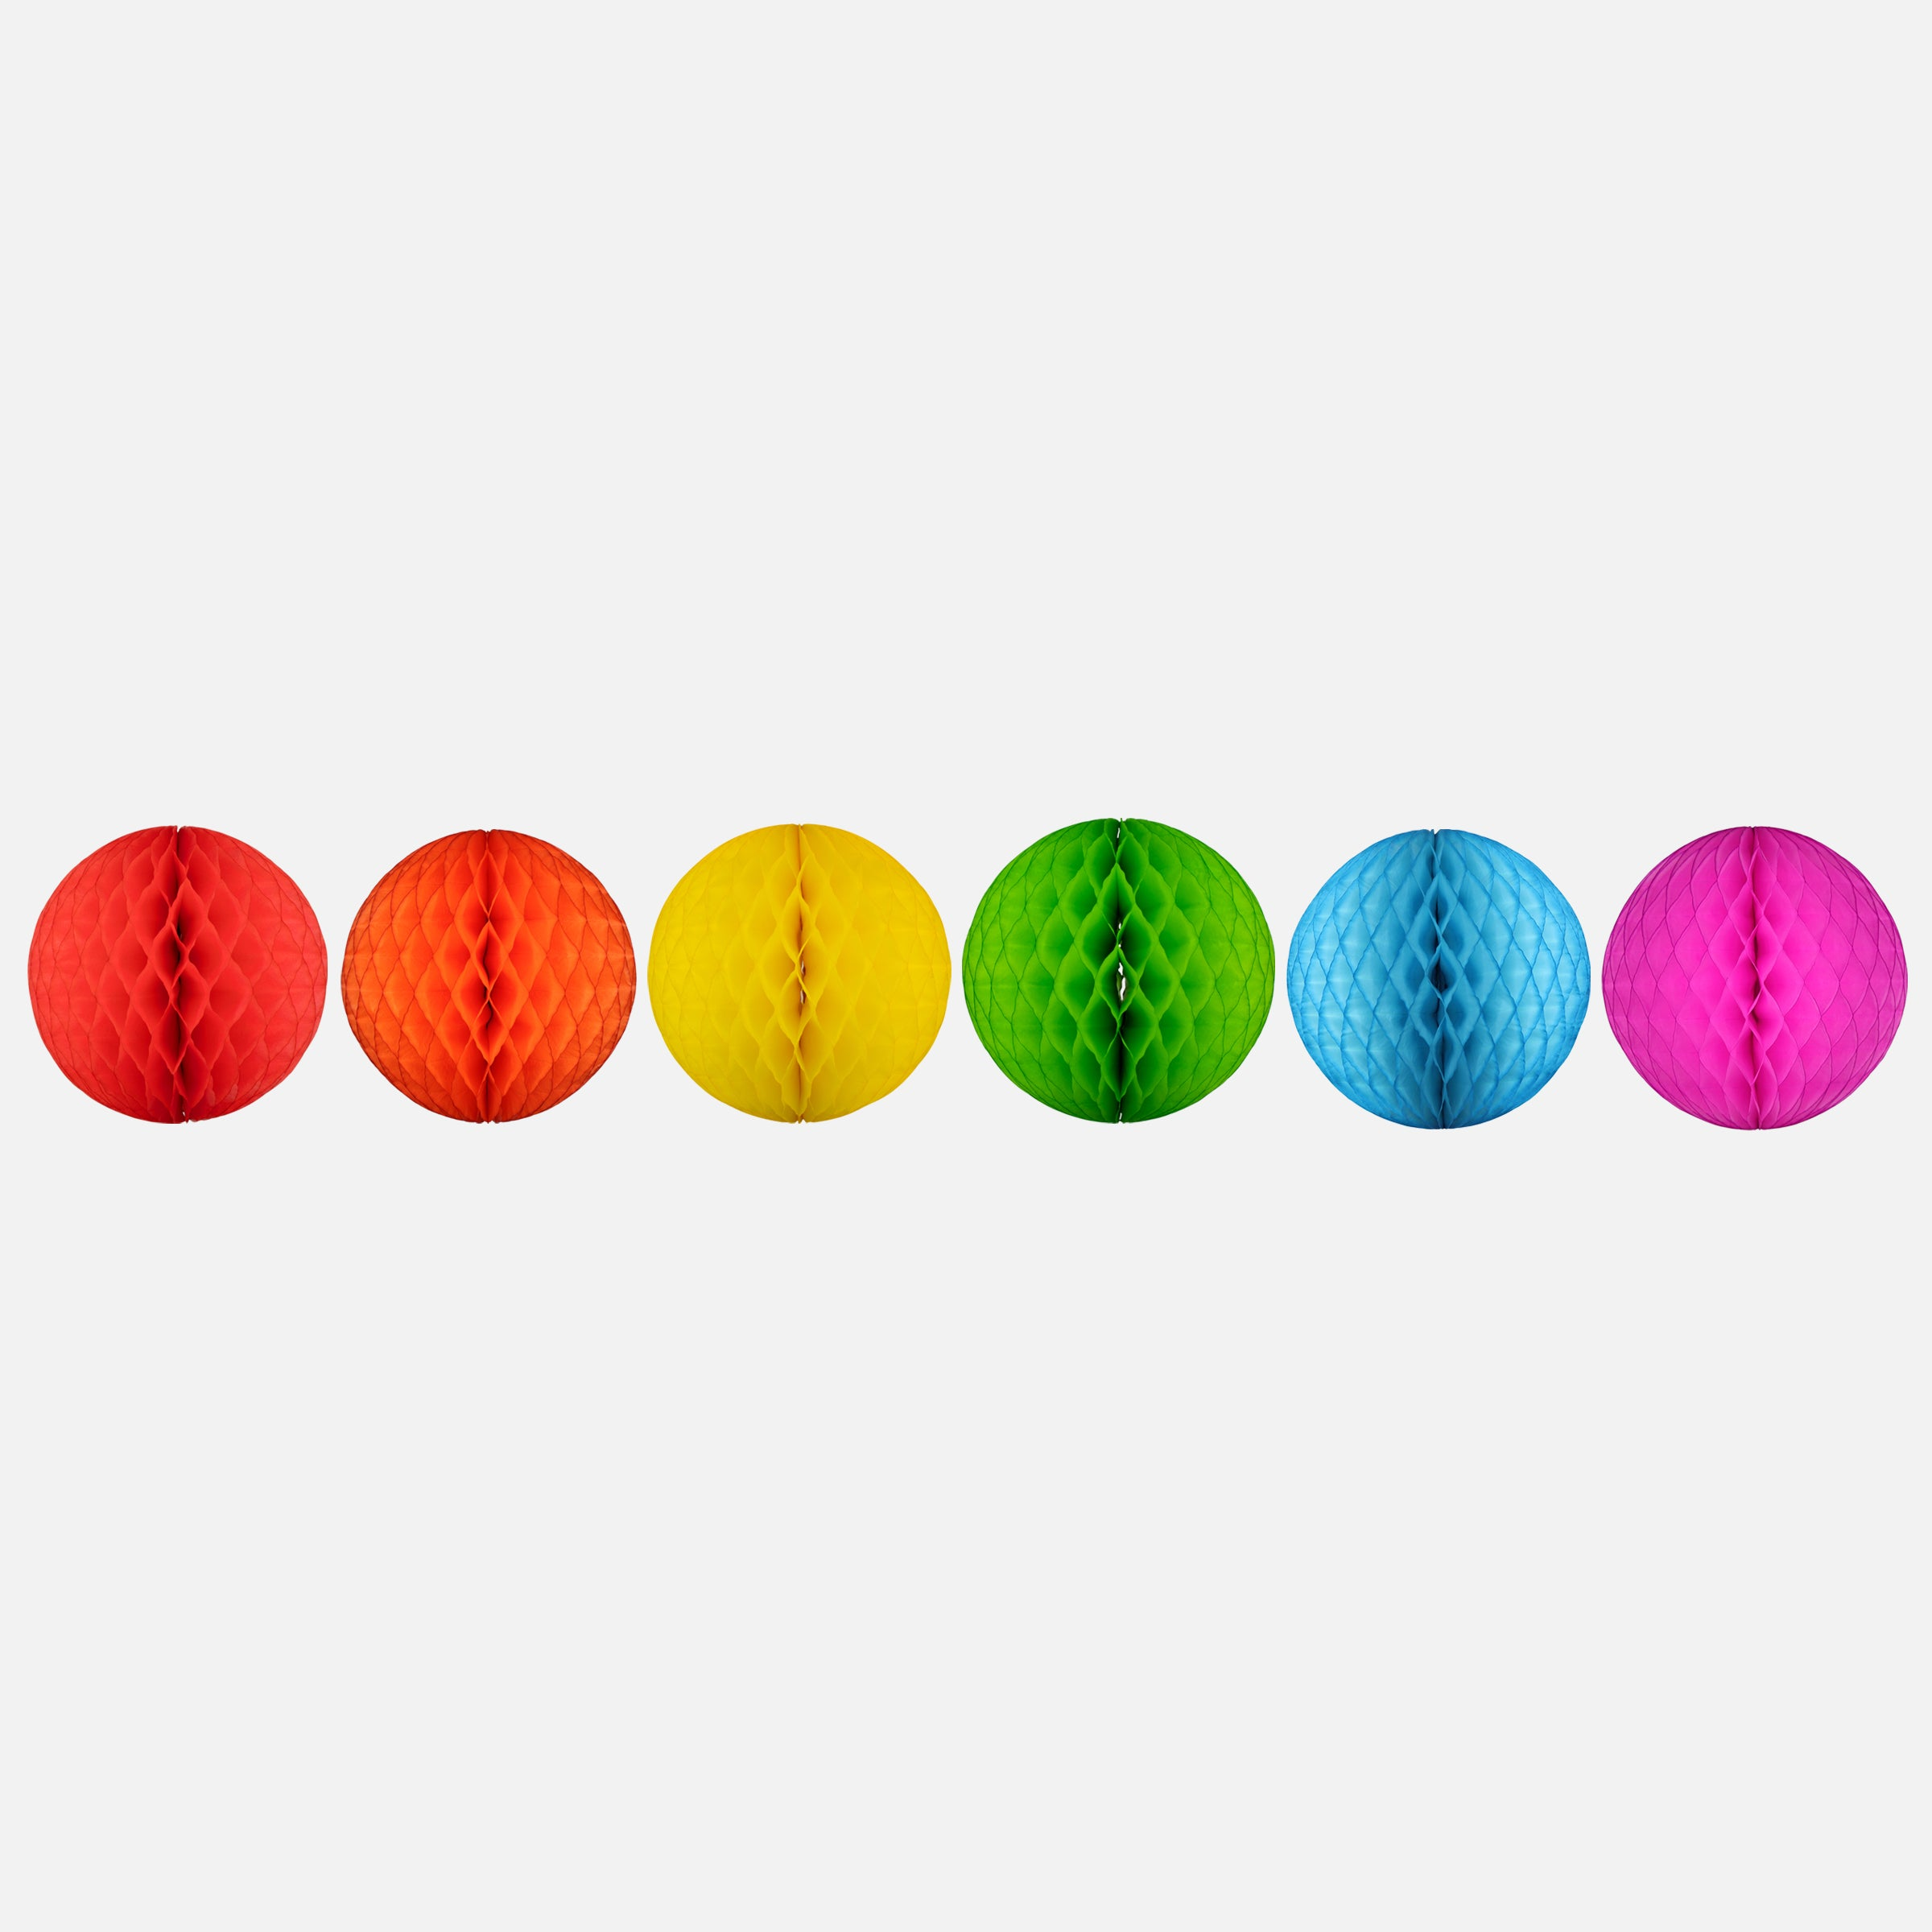 Honeycomb Ball 15cm, Rainbow Set